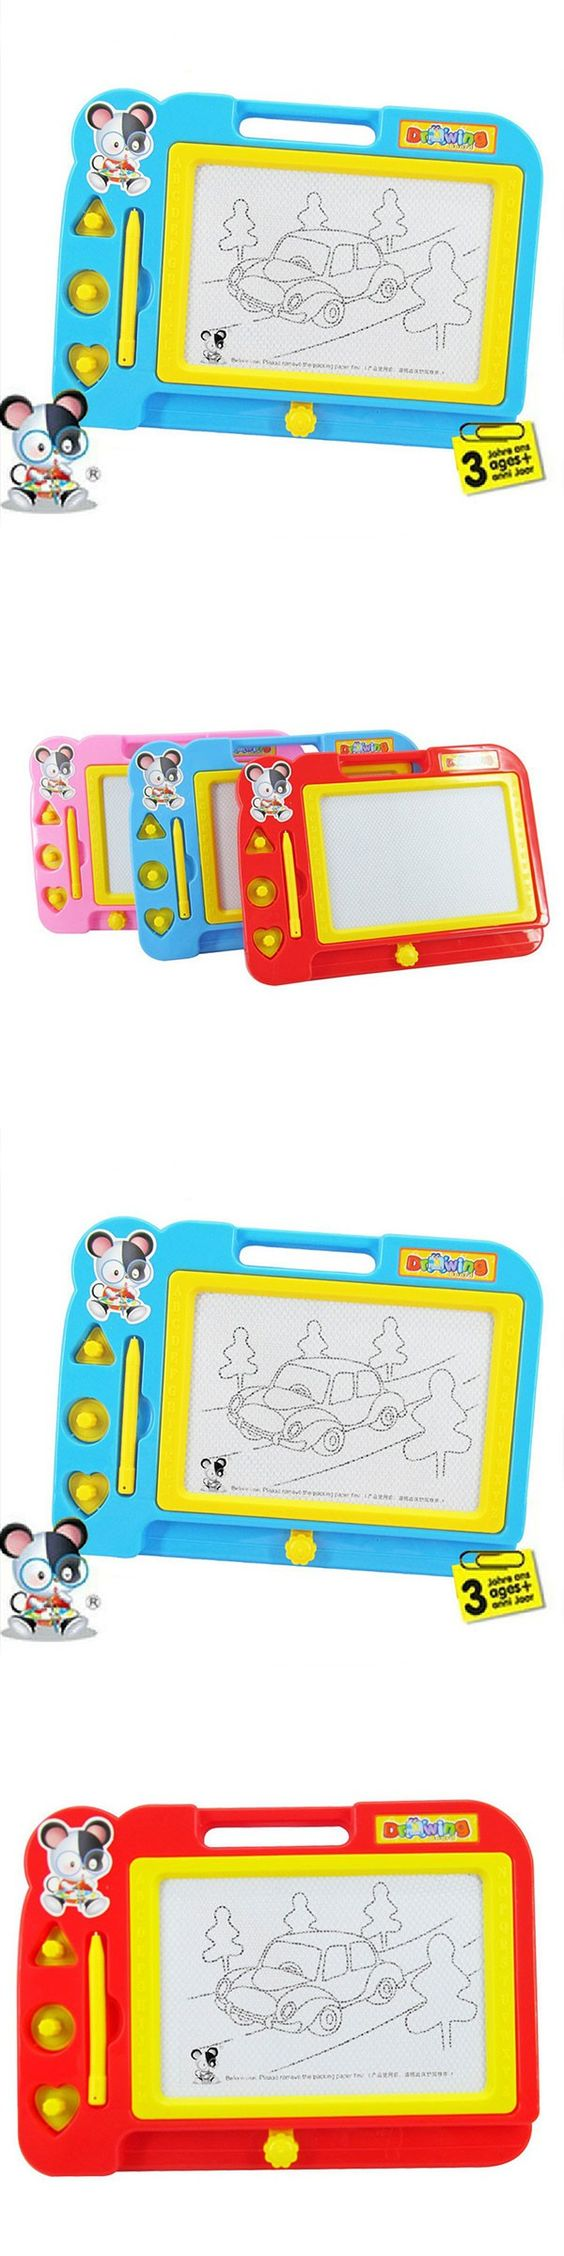 Magnetic craft board - Plastic Magnetic Drawing Board Sketcher Doodle Painting Toy Craft Art For Kids Children Multi Color